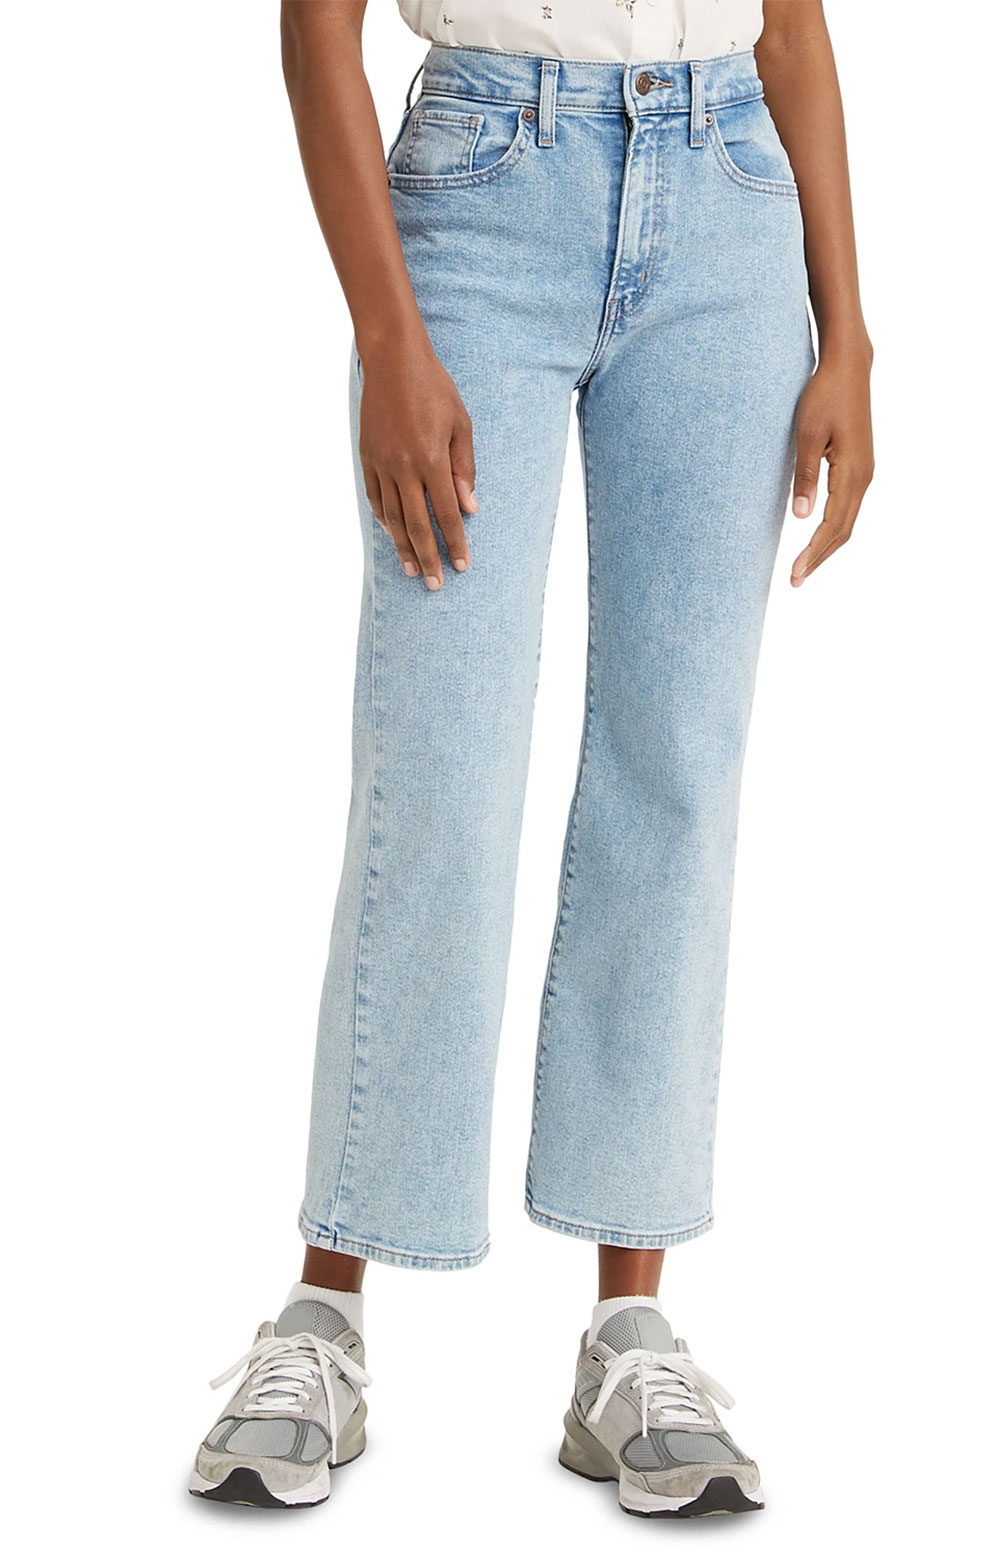 (A0967-0001) High Rise Cropped Flare Jeans - High Light/Light Wash